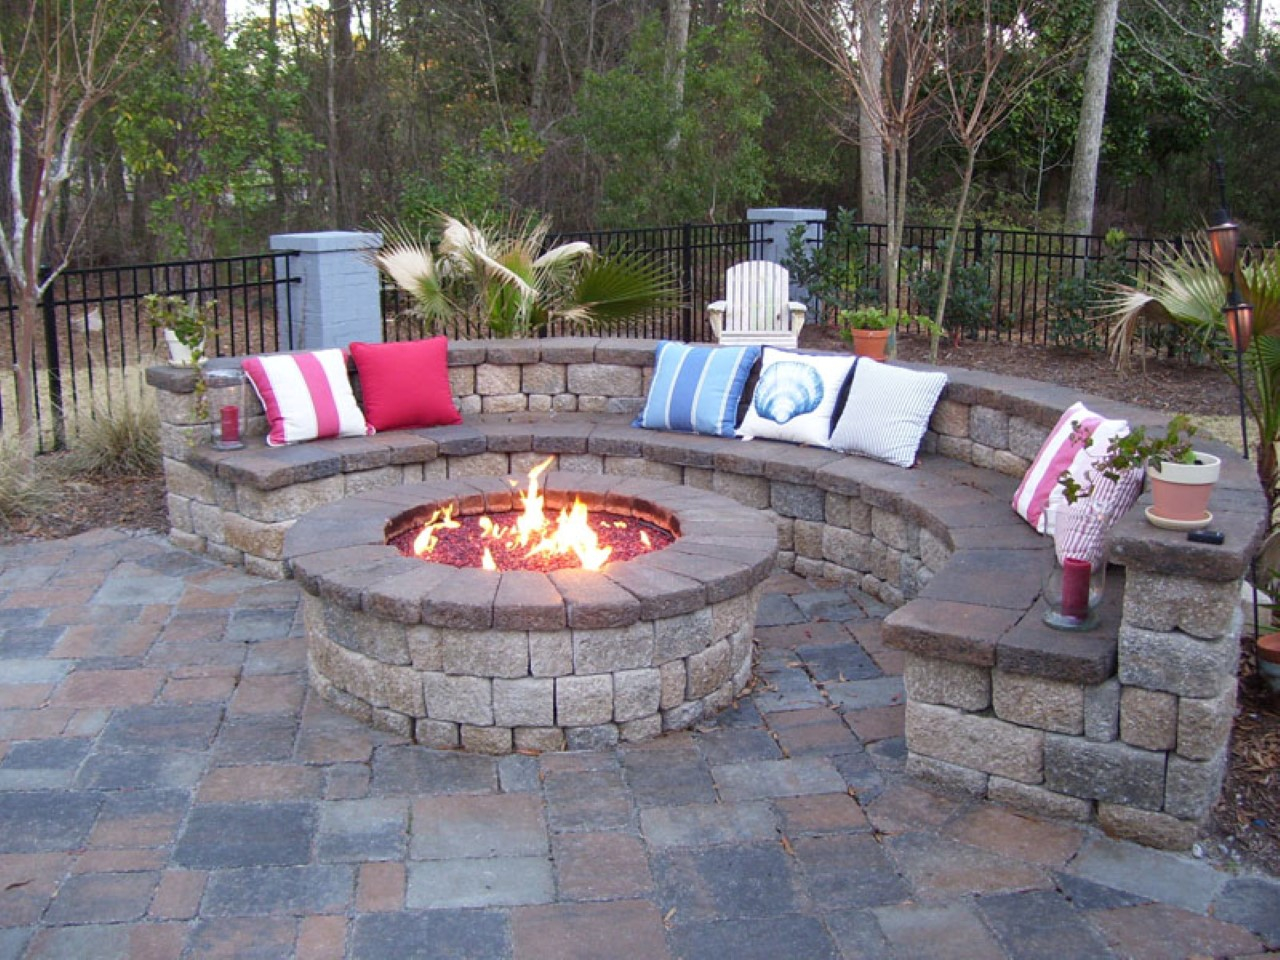 Fire Pit Fence Patio Backyard Exterior Near Stone Bench pertaining to dimensions 1280 X 960